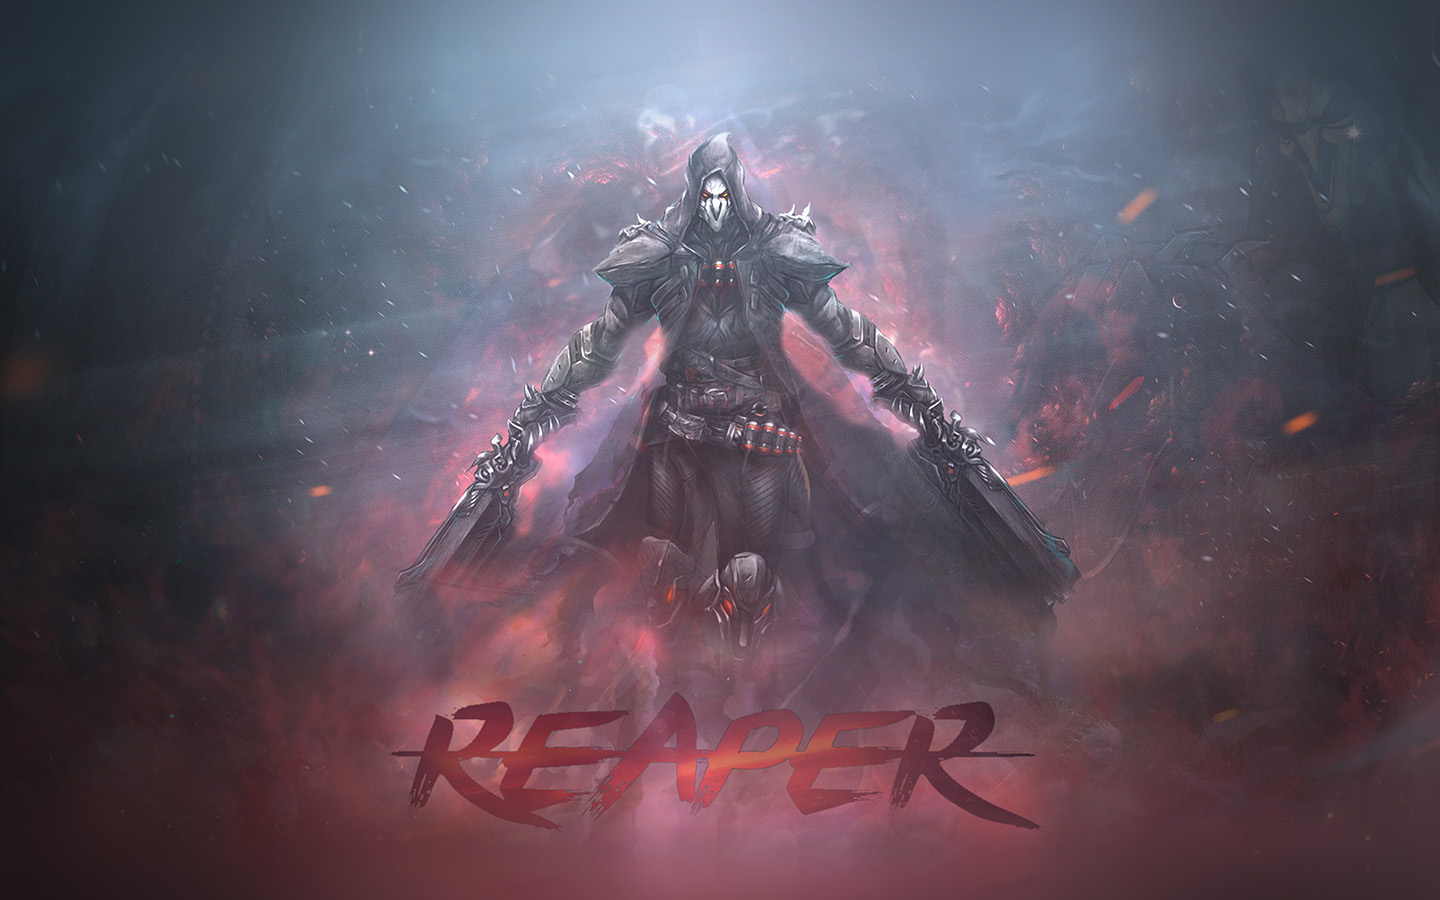 Iphone 4 Car Wallpapers Hd Ar99 Overwatch Reaper Game Art Illustration Wallpaper